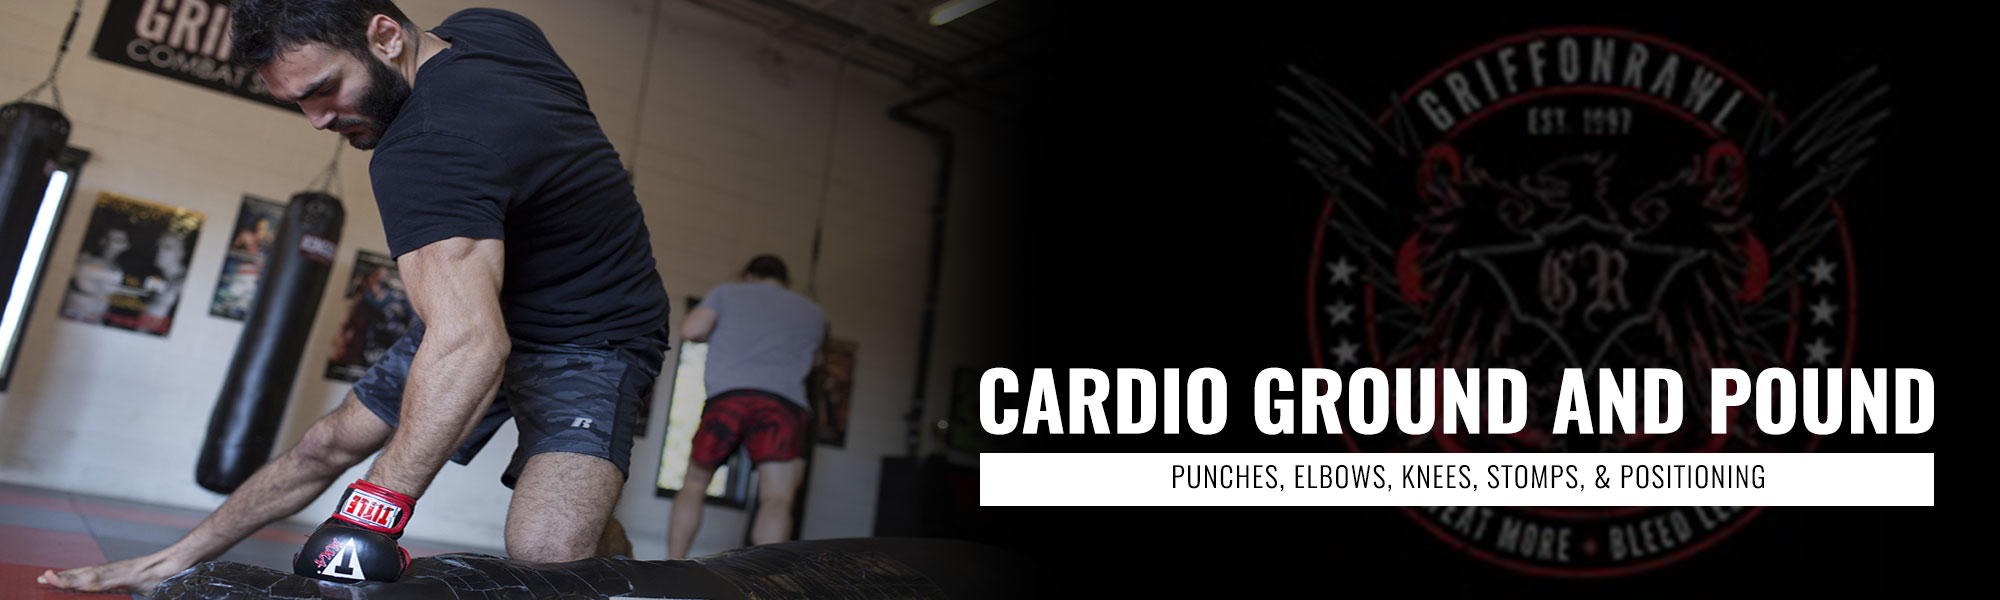 Cardio Ground and Pound